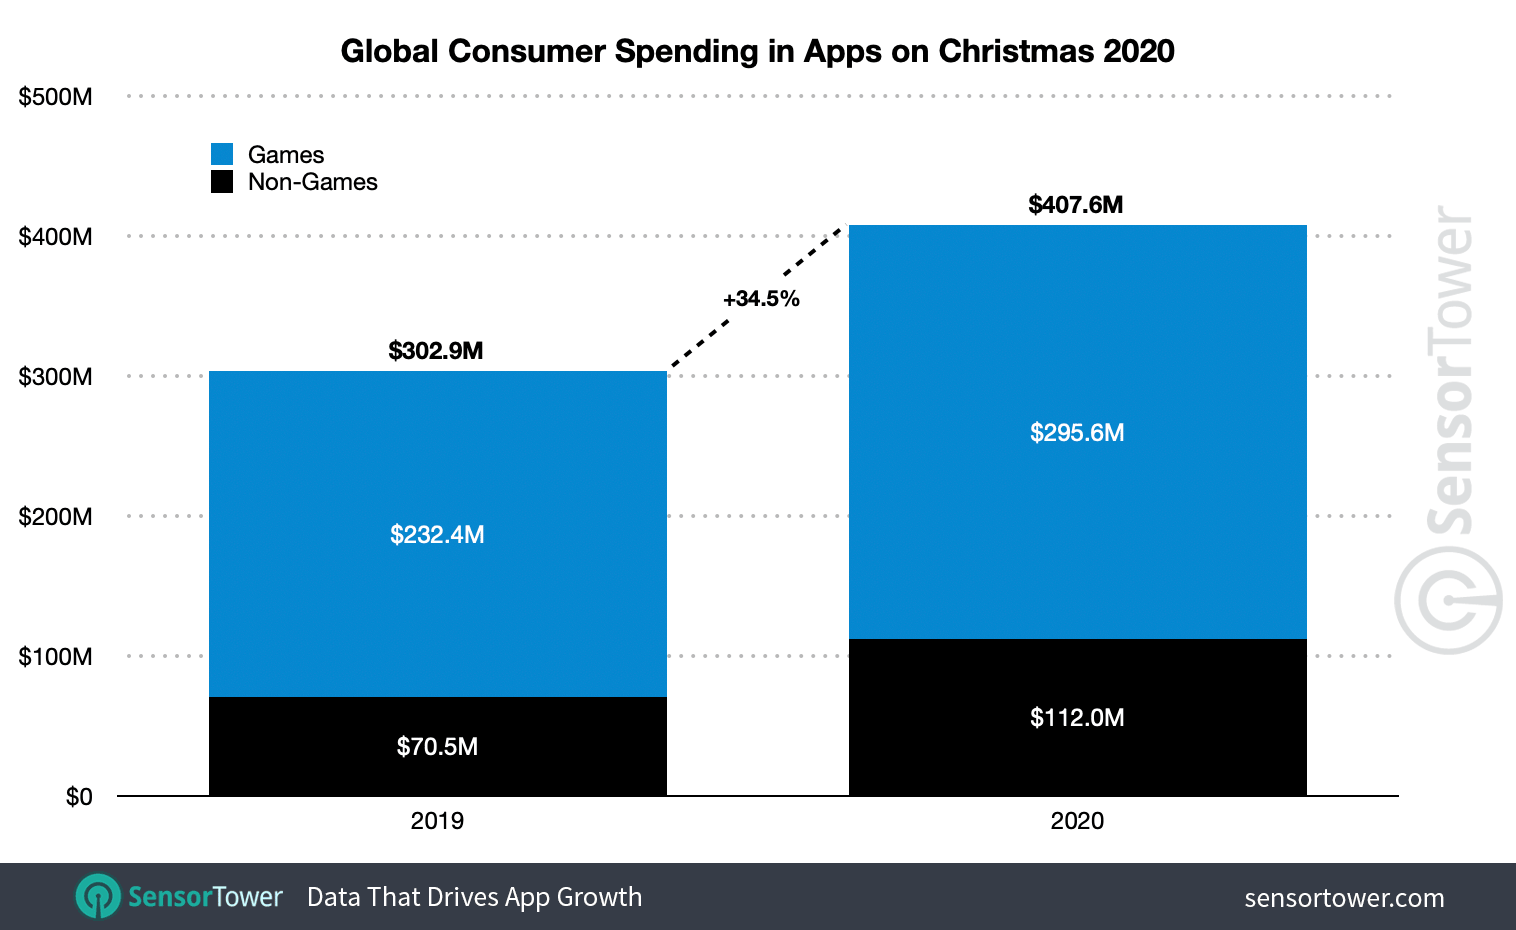 Global consumer spending on mobile apps this Christmas grew 34.5 percent year-over-year to $407.6 million.